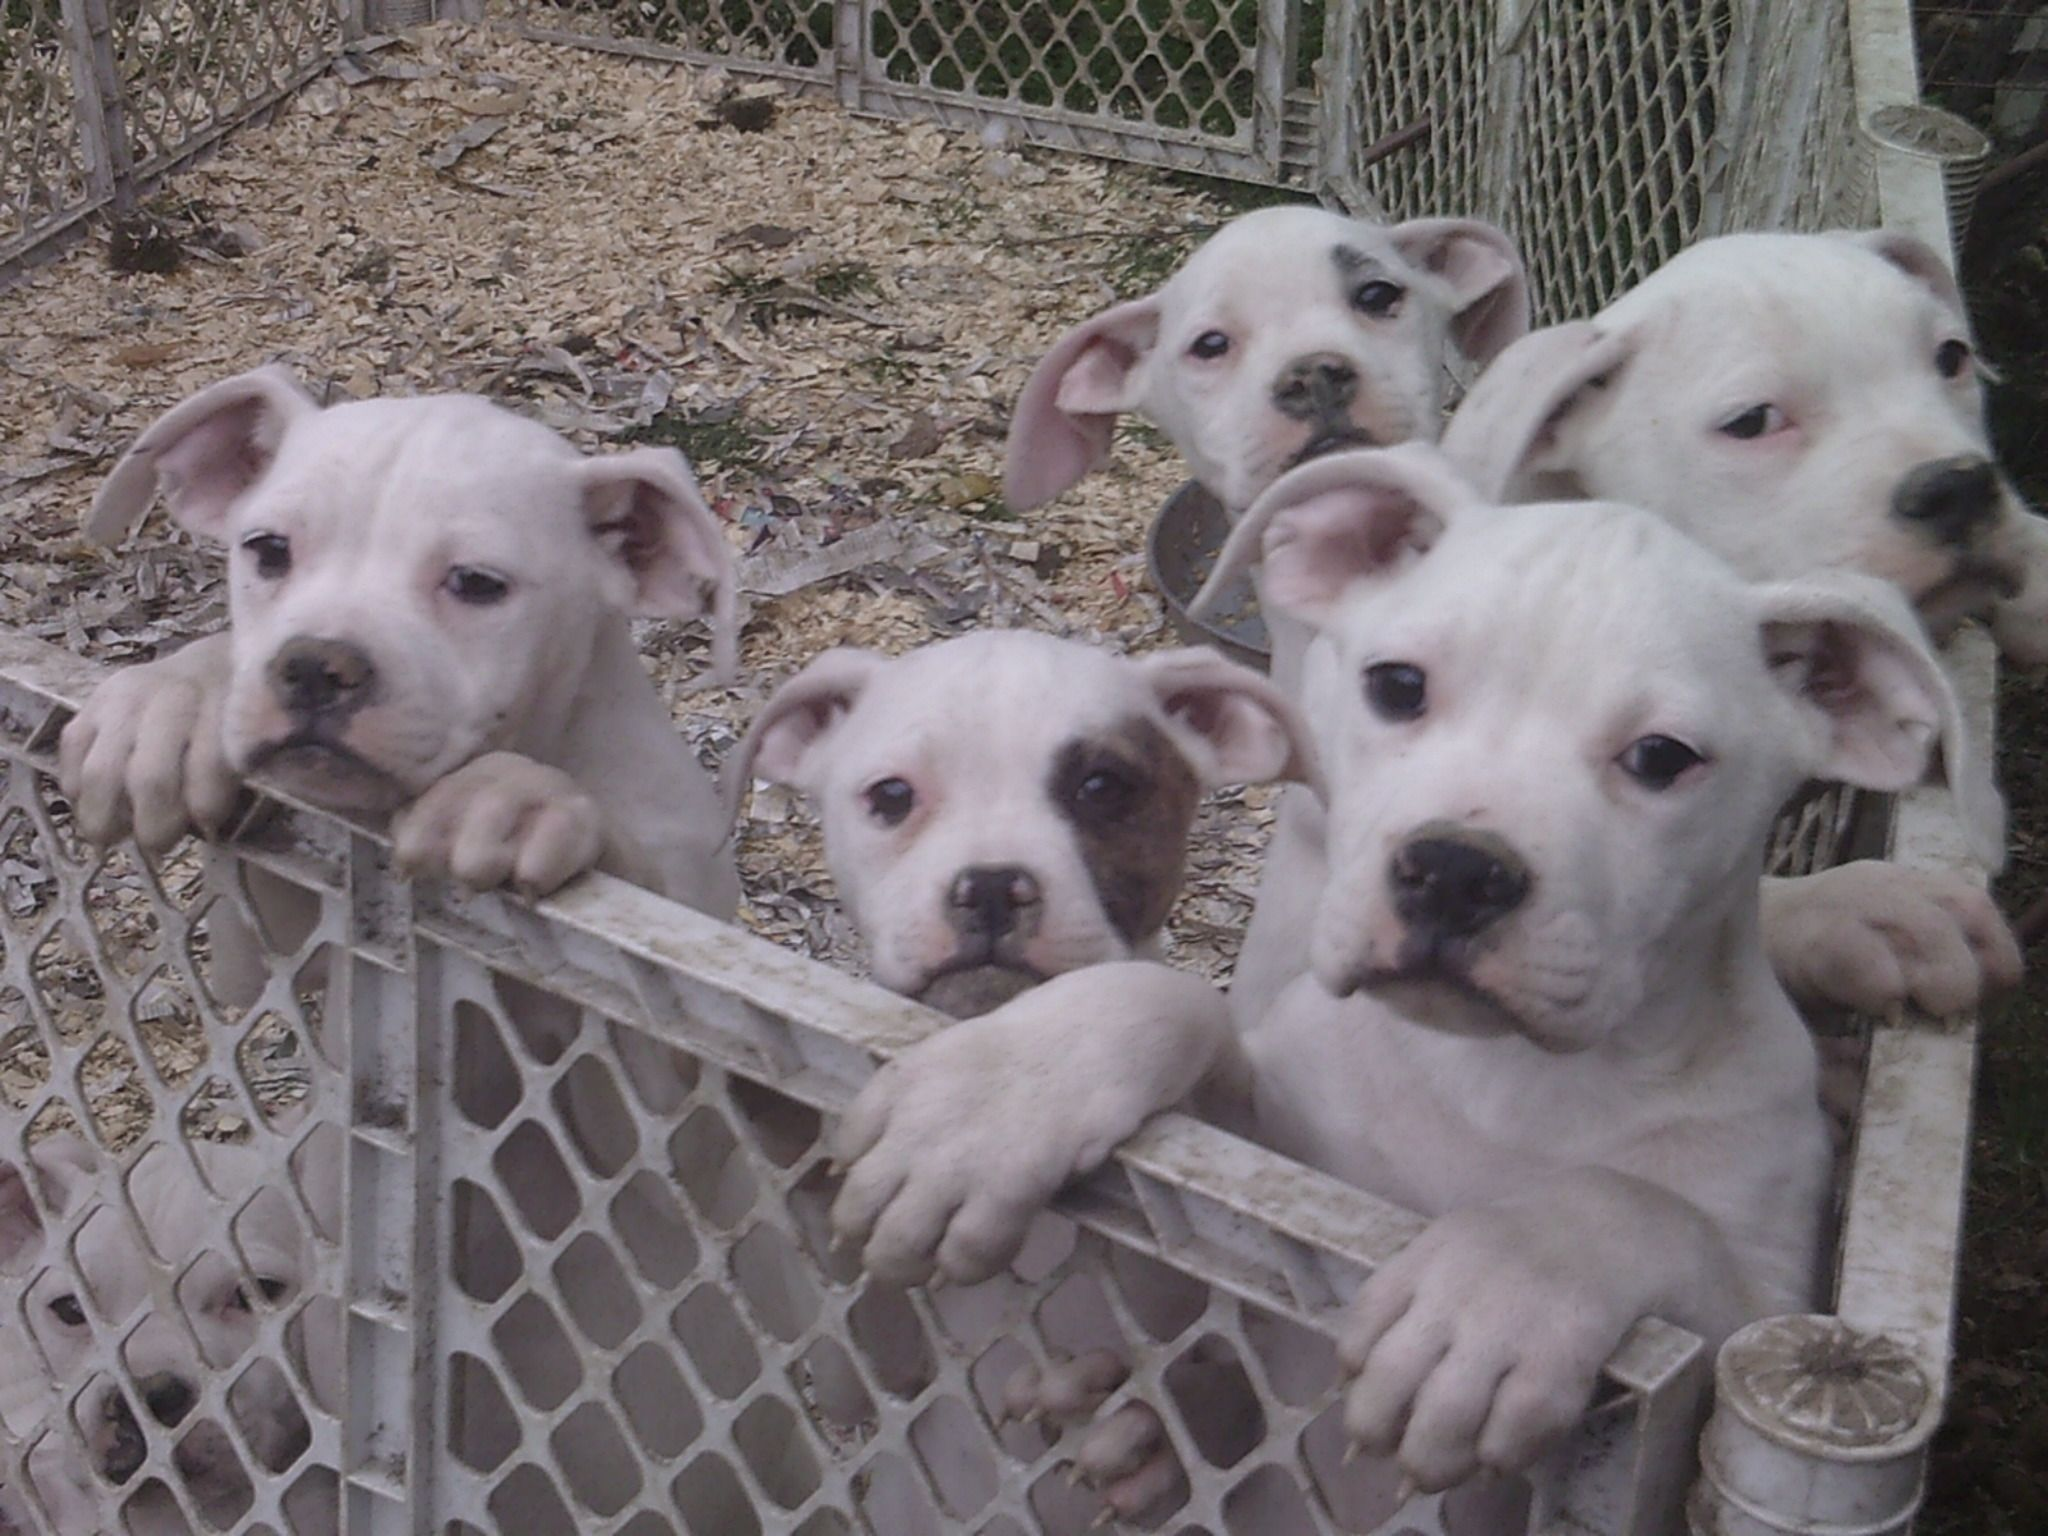 Johnson American Bulldog Pups At 4 Months Old Puppies Yorkshire Terrier Puppies